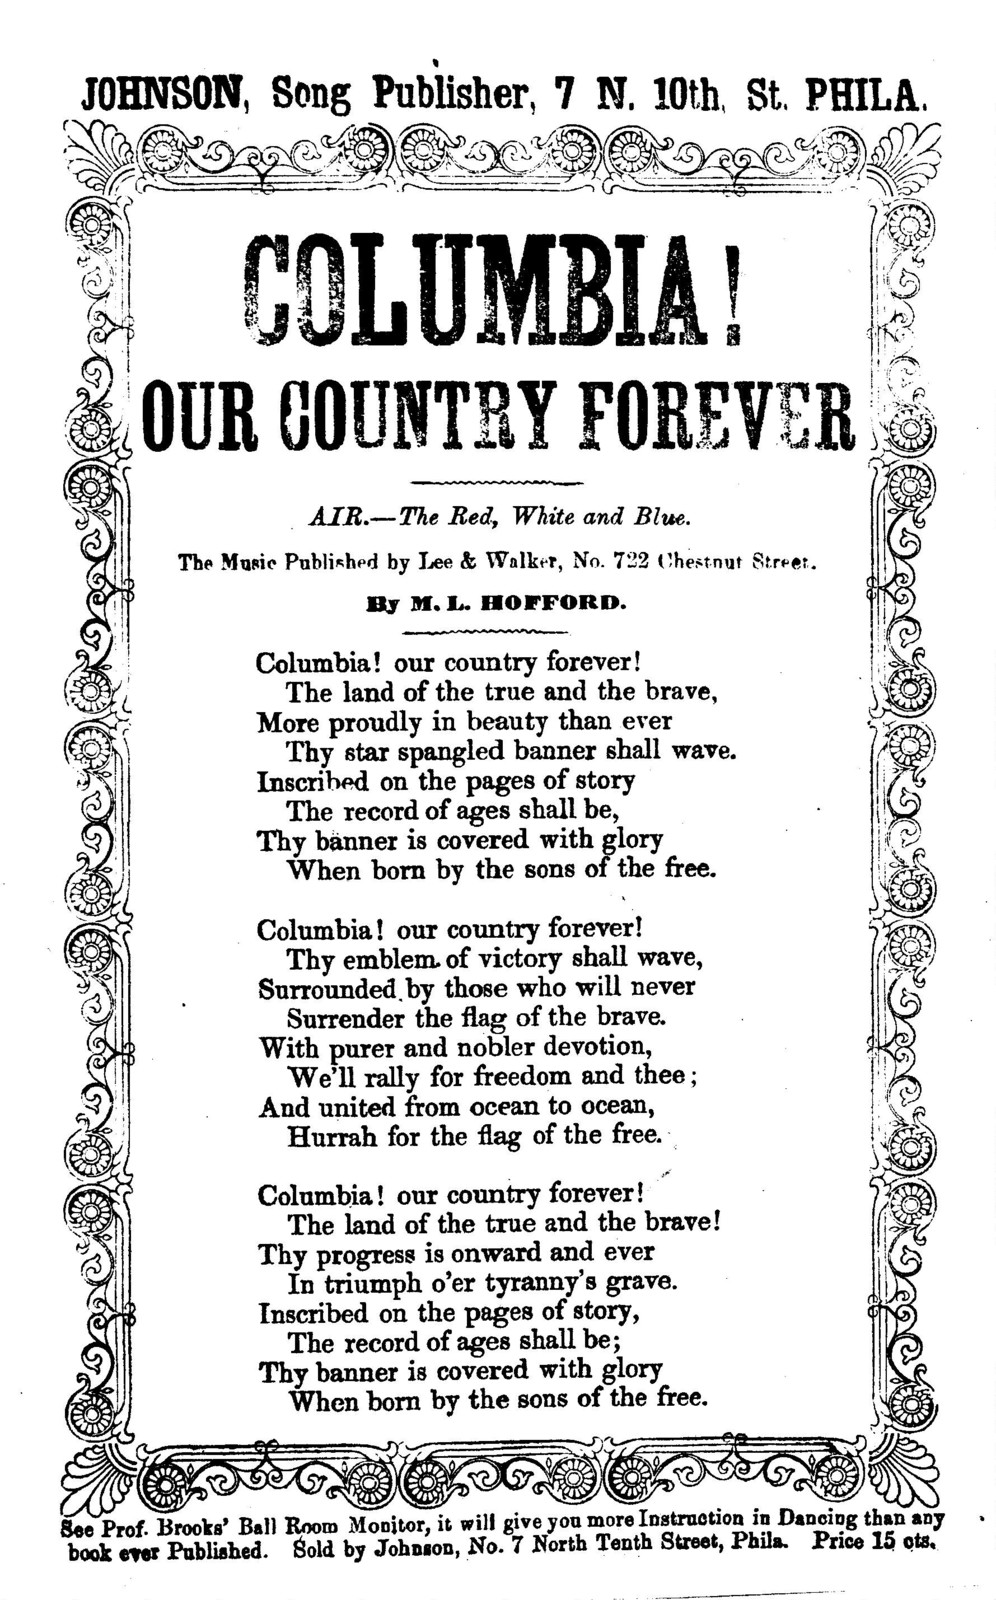 "Columbia! our country forever. Air-Red white and blue."" By M. L. Hofford. J. H. Johnson, Song Publisher, 7 N. 10th. Street, Phila"